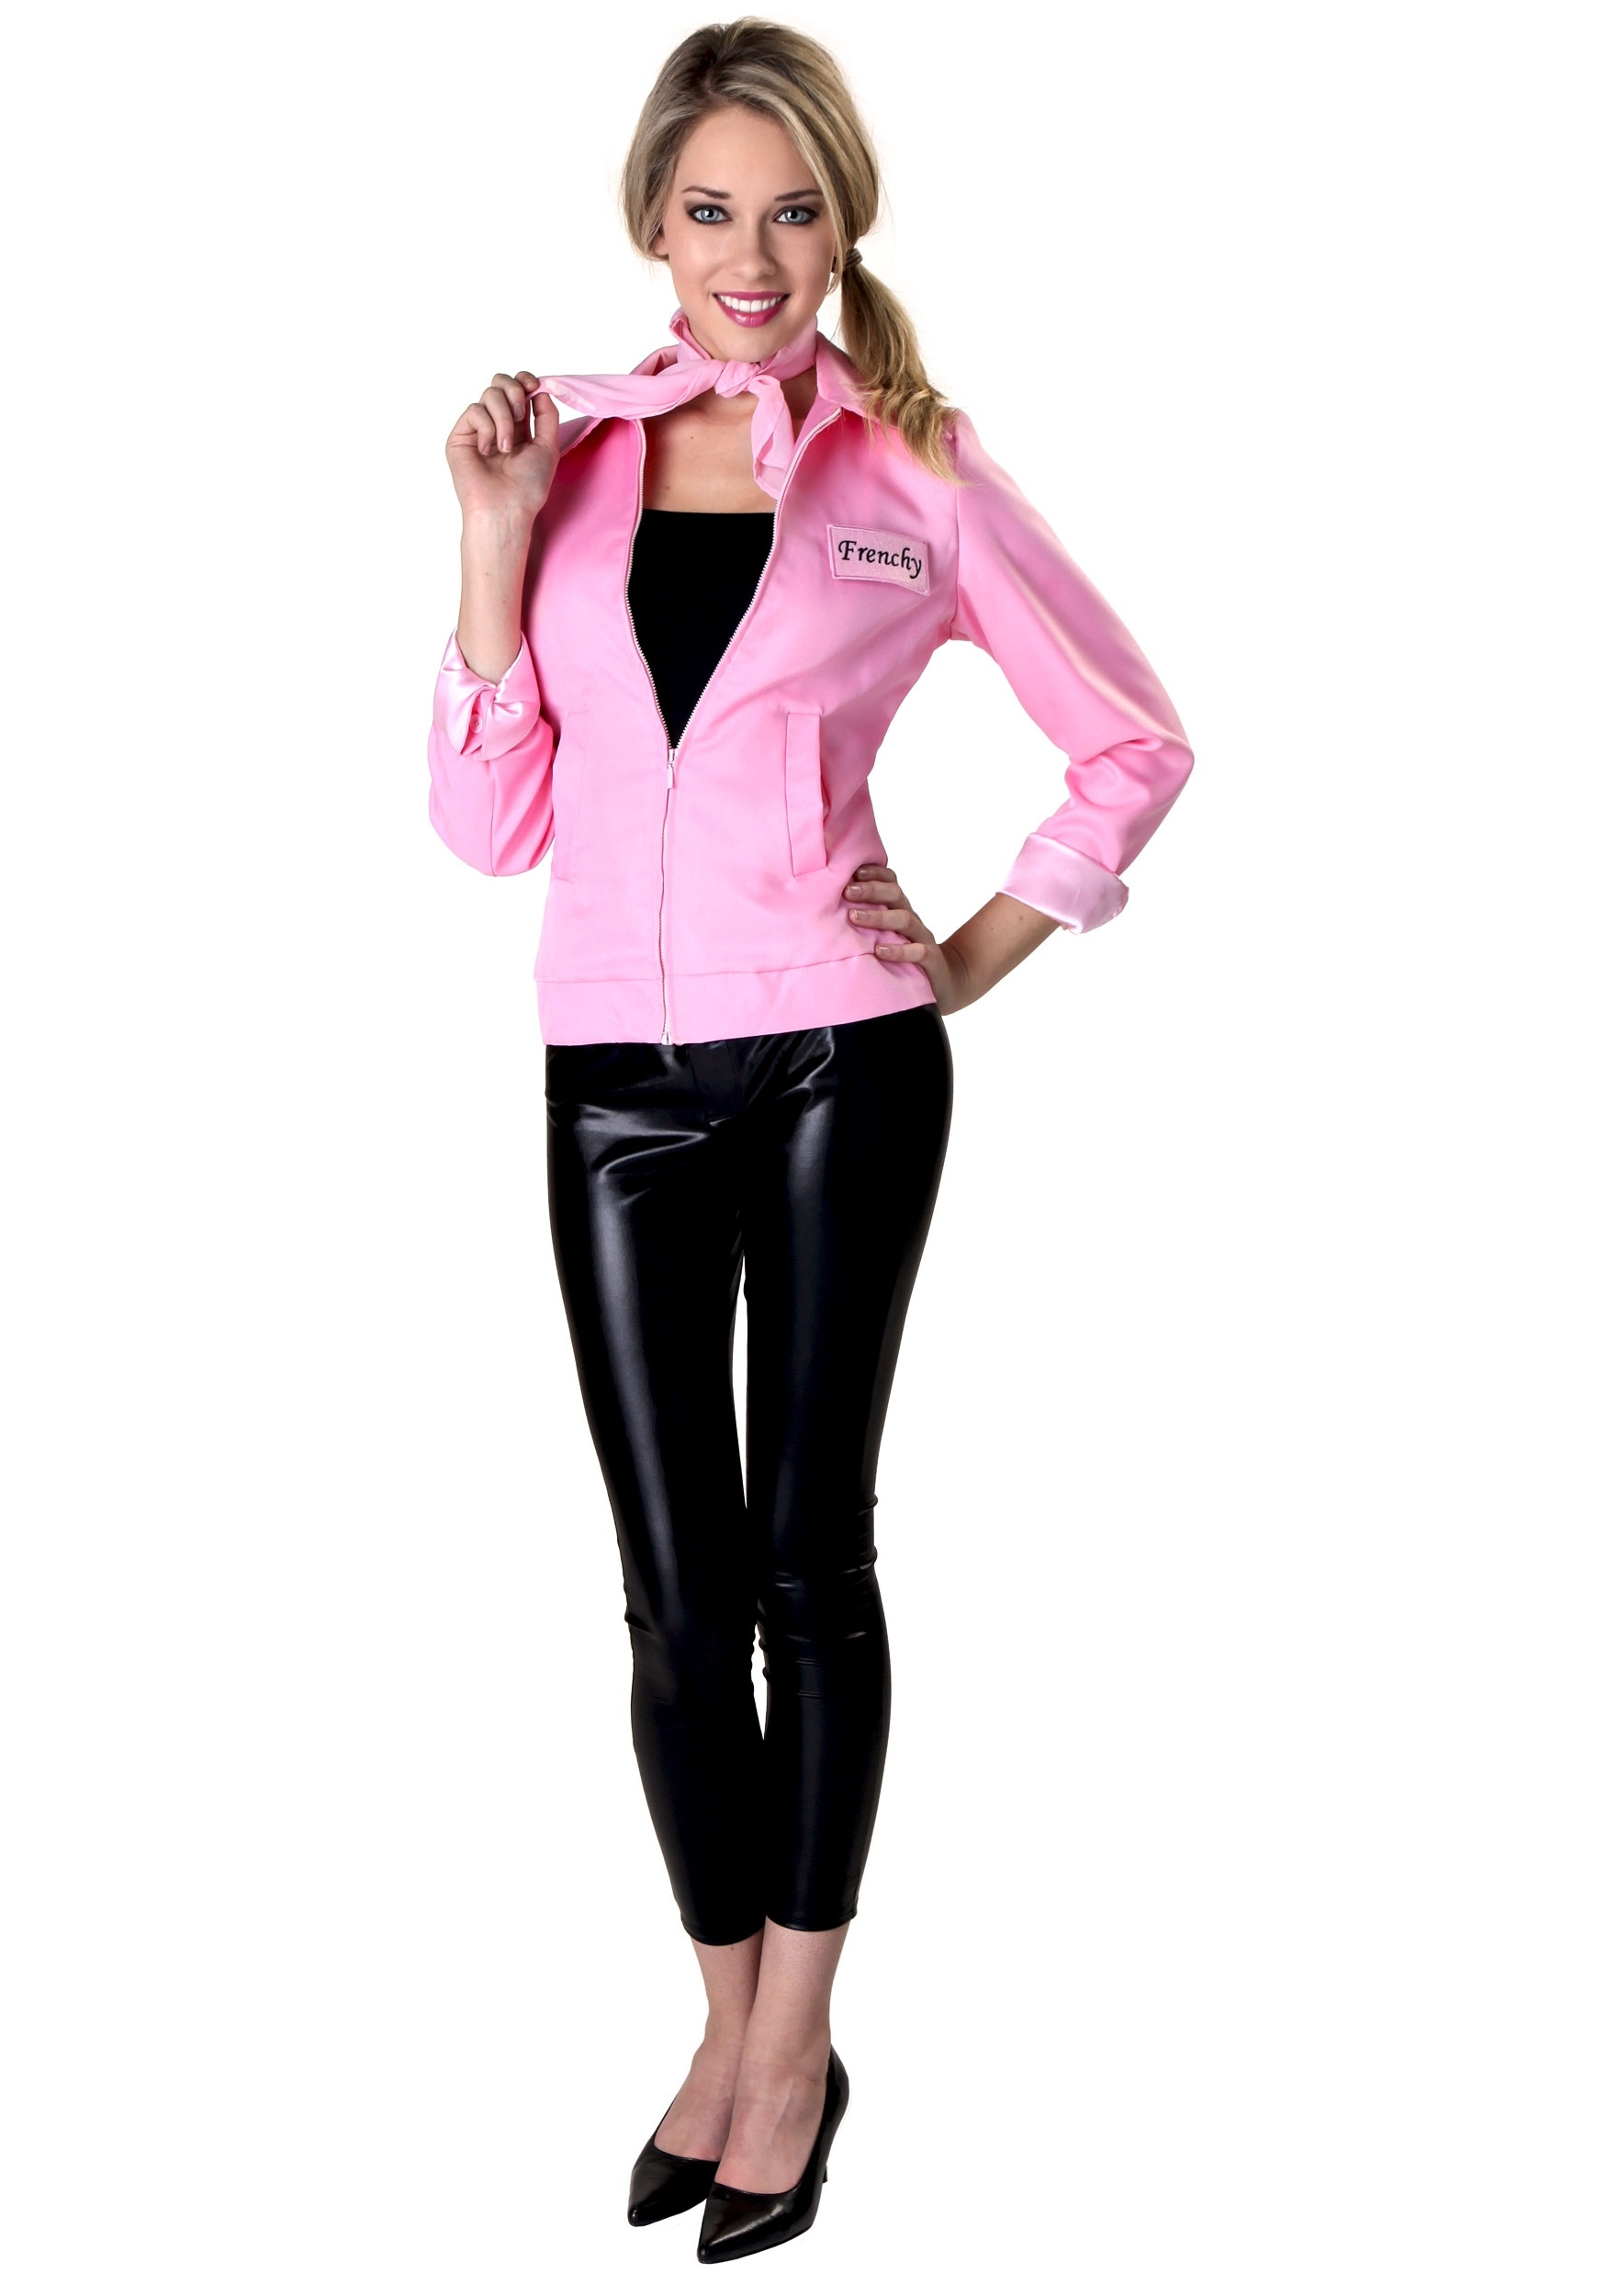 authentic grease plus size pink ladies jacket 3 - Greece Halloween Costumes